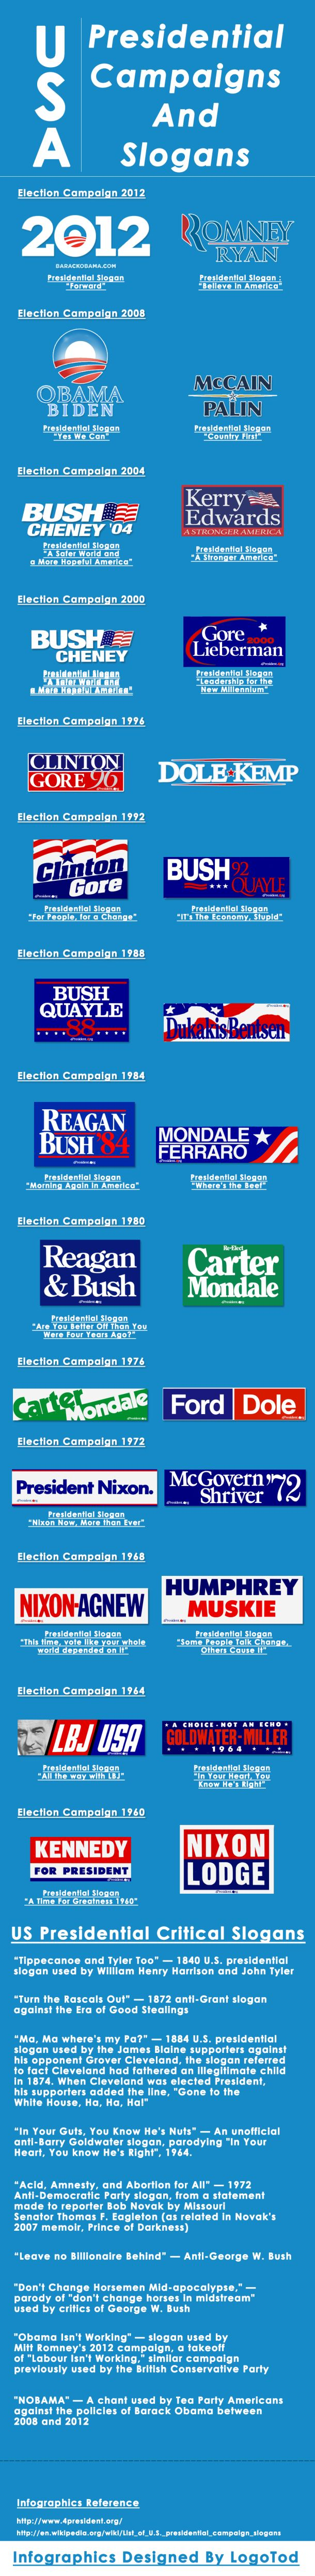 Presidential Campaigns And Slogans [INFOGRAPHIC] #presidential #campaigns #slogans